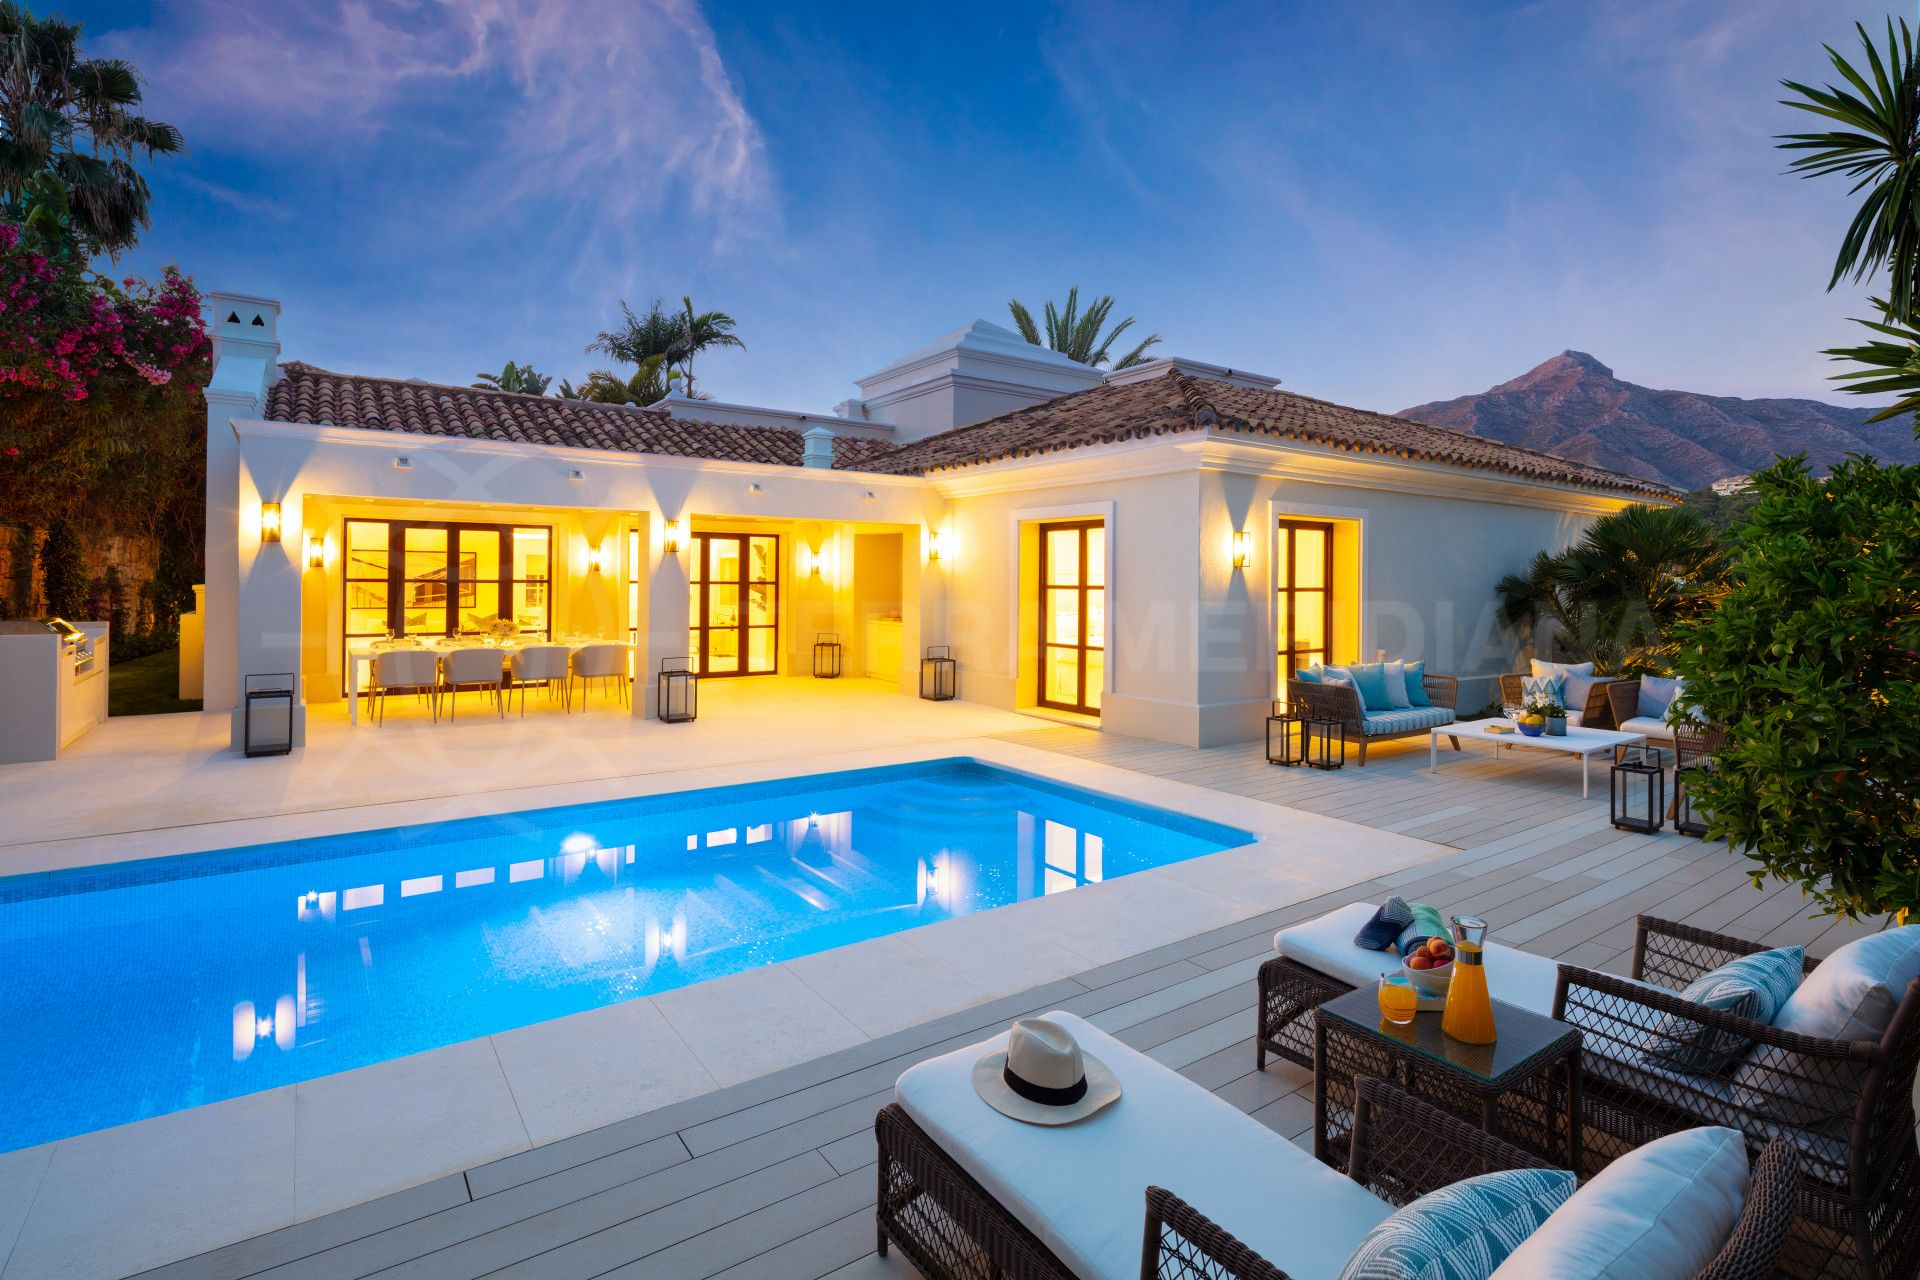 Landlords' guide to long-term rentals in Costa del Sol